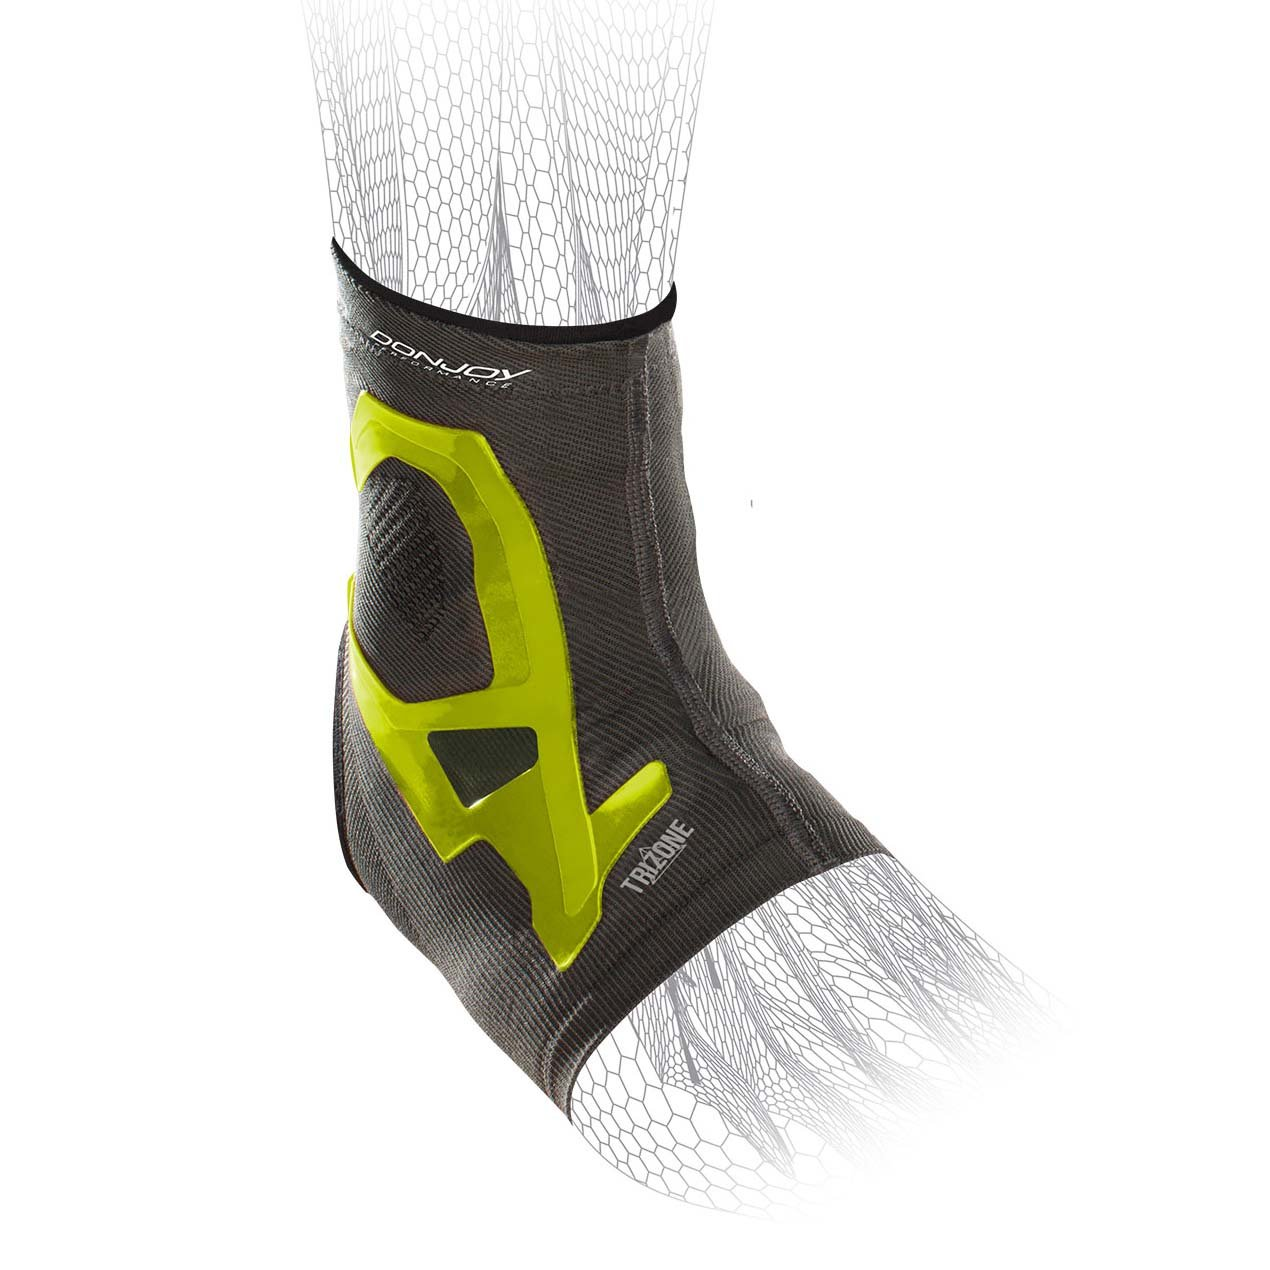 DonJoy Performance TRIZONE Compression: Ankle Support Brace, Slime Green, Small